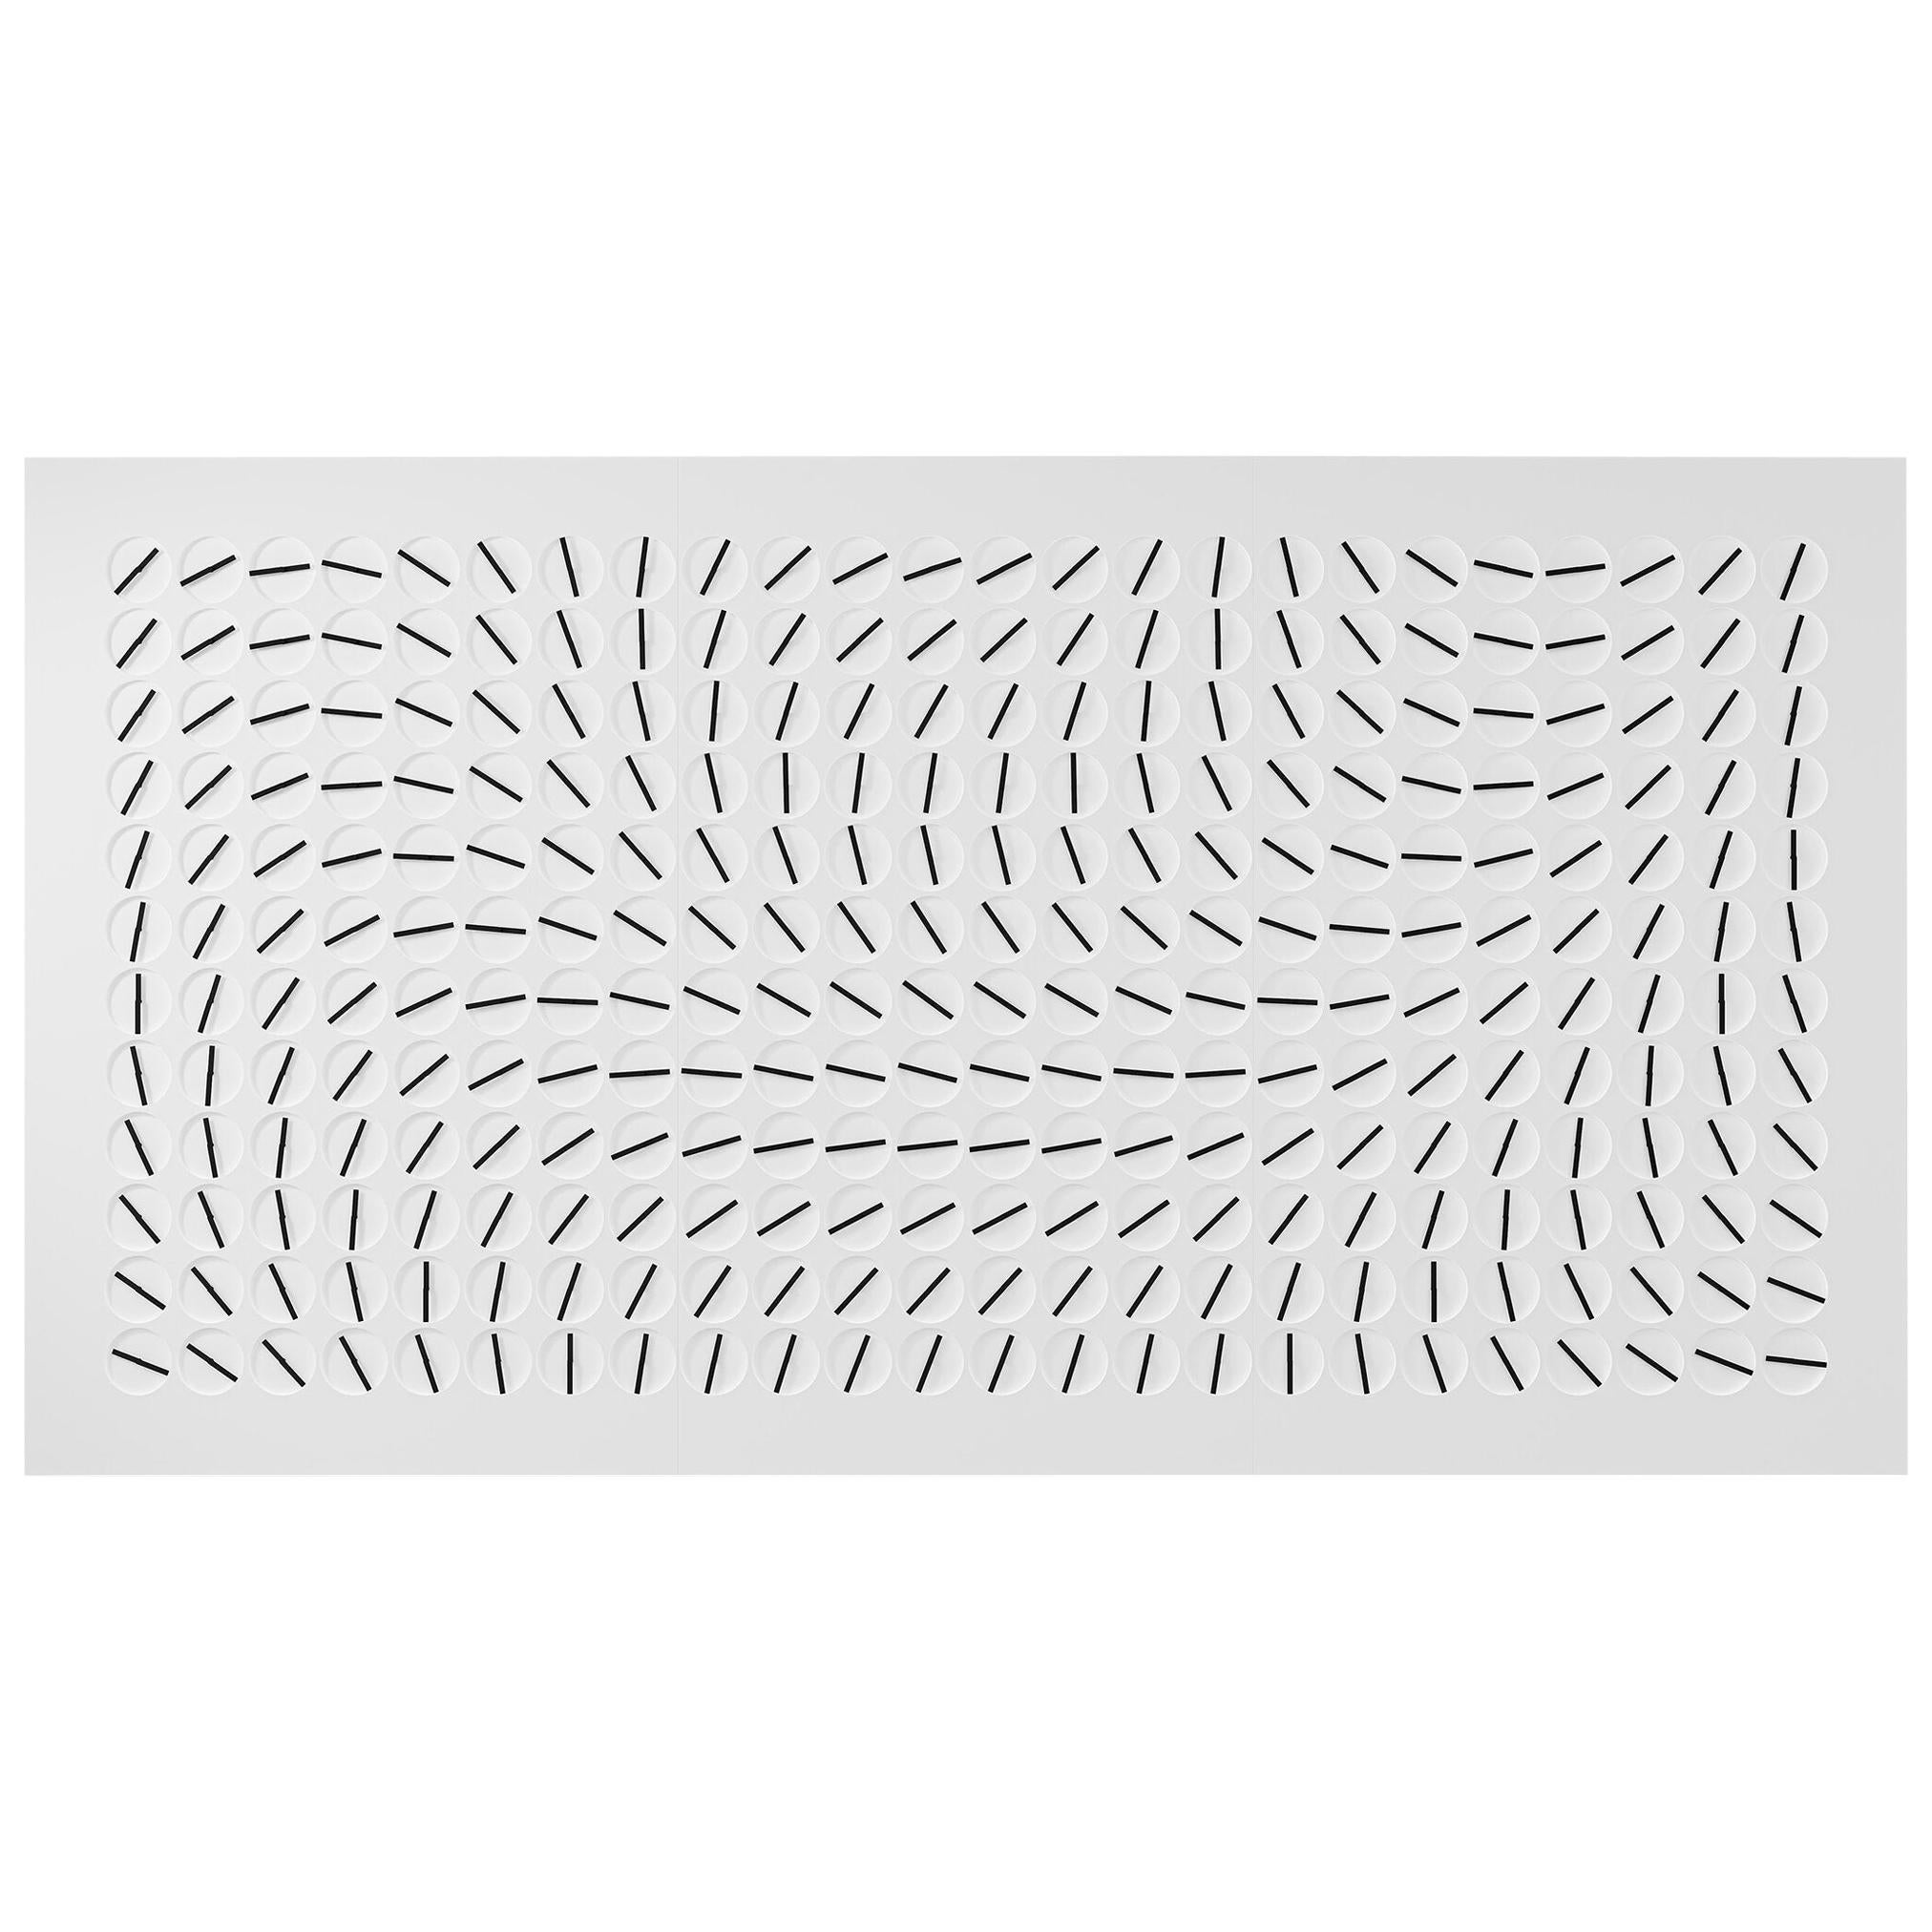 A Million Times 288 'Ten' White Wall Clock Wall Sculpture by Humans Since 1982